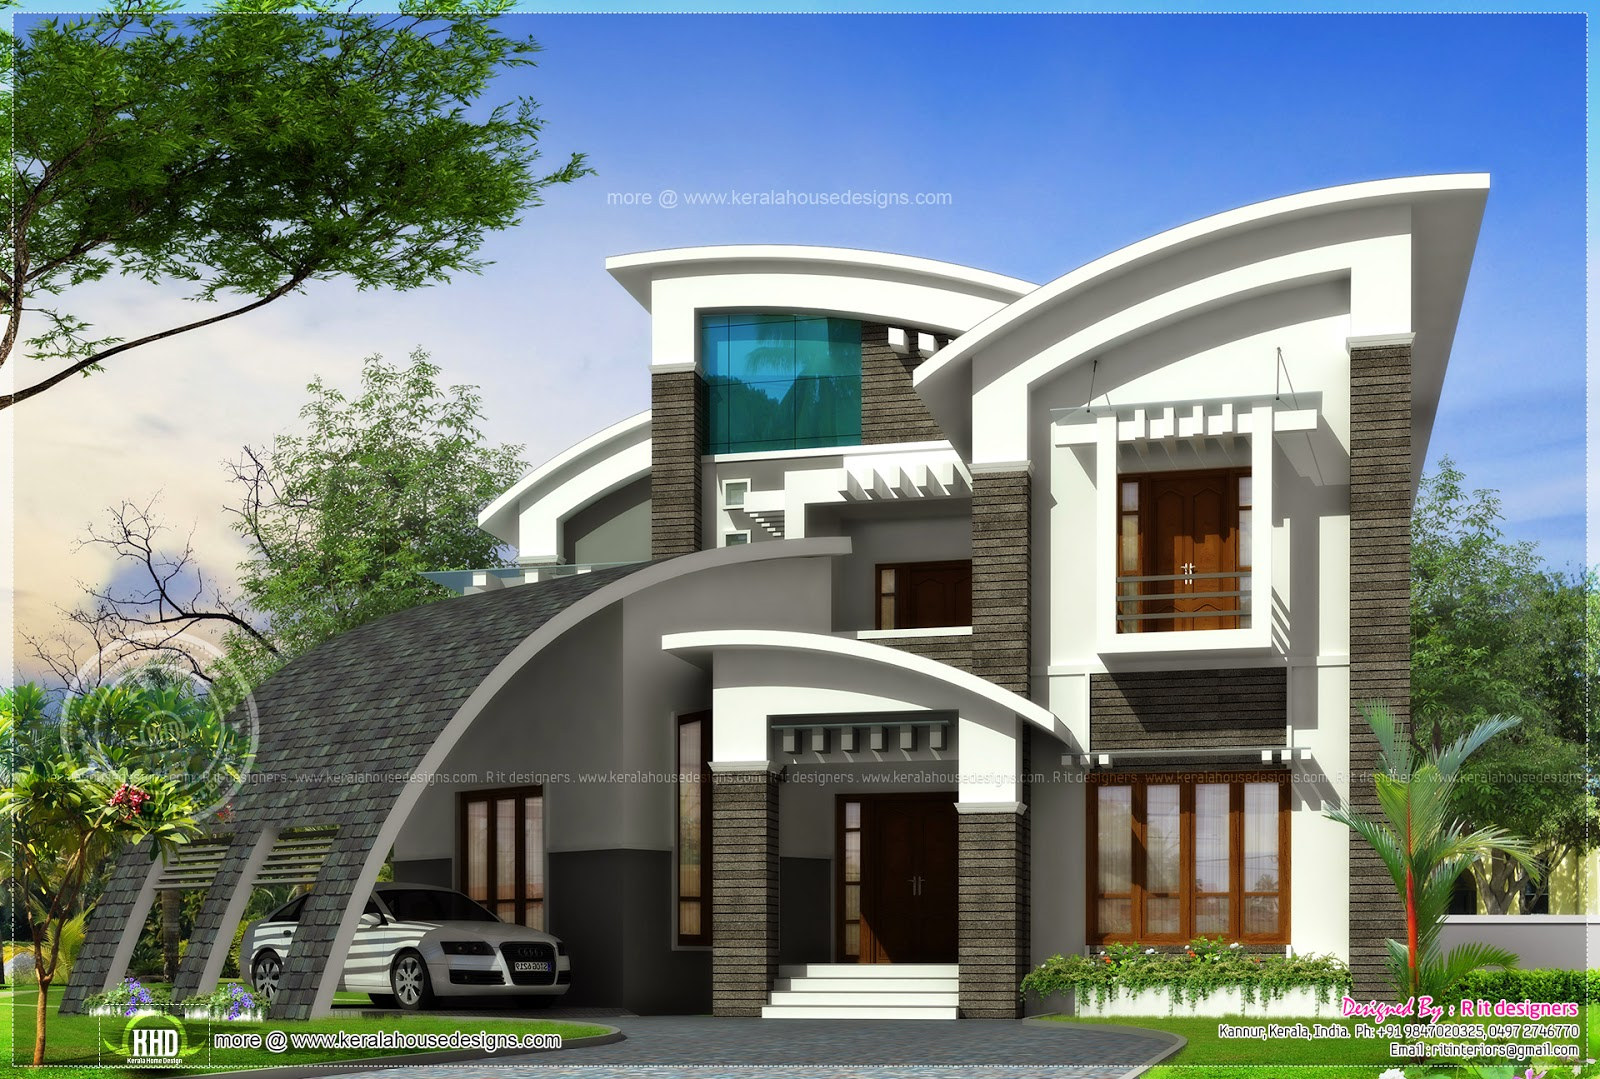 Super luxury ultra modern house design kerala home for Modern luxury home design